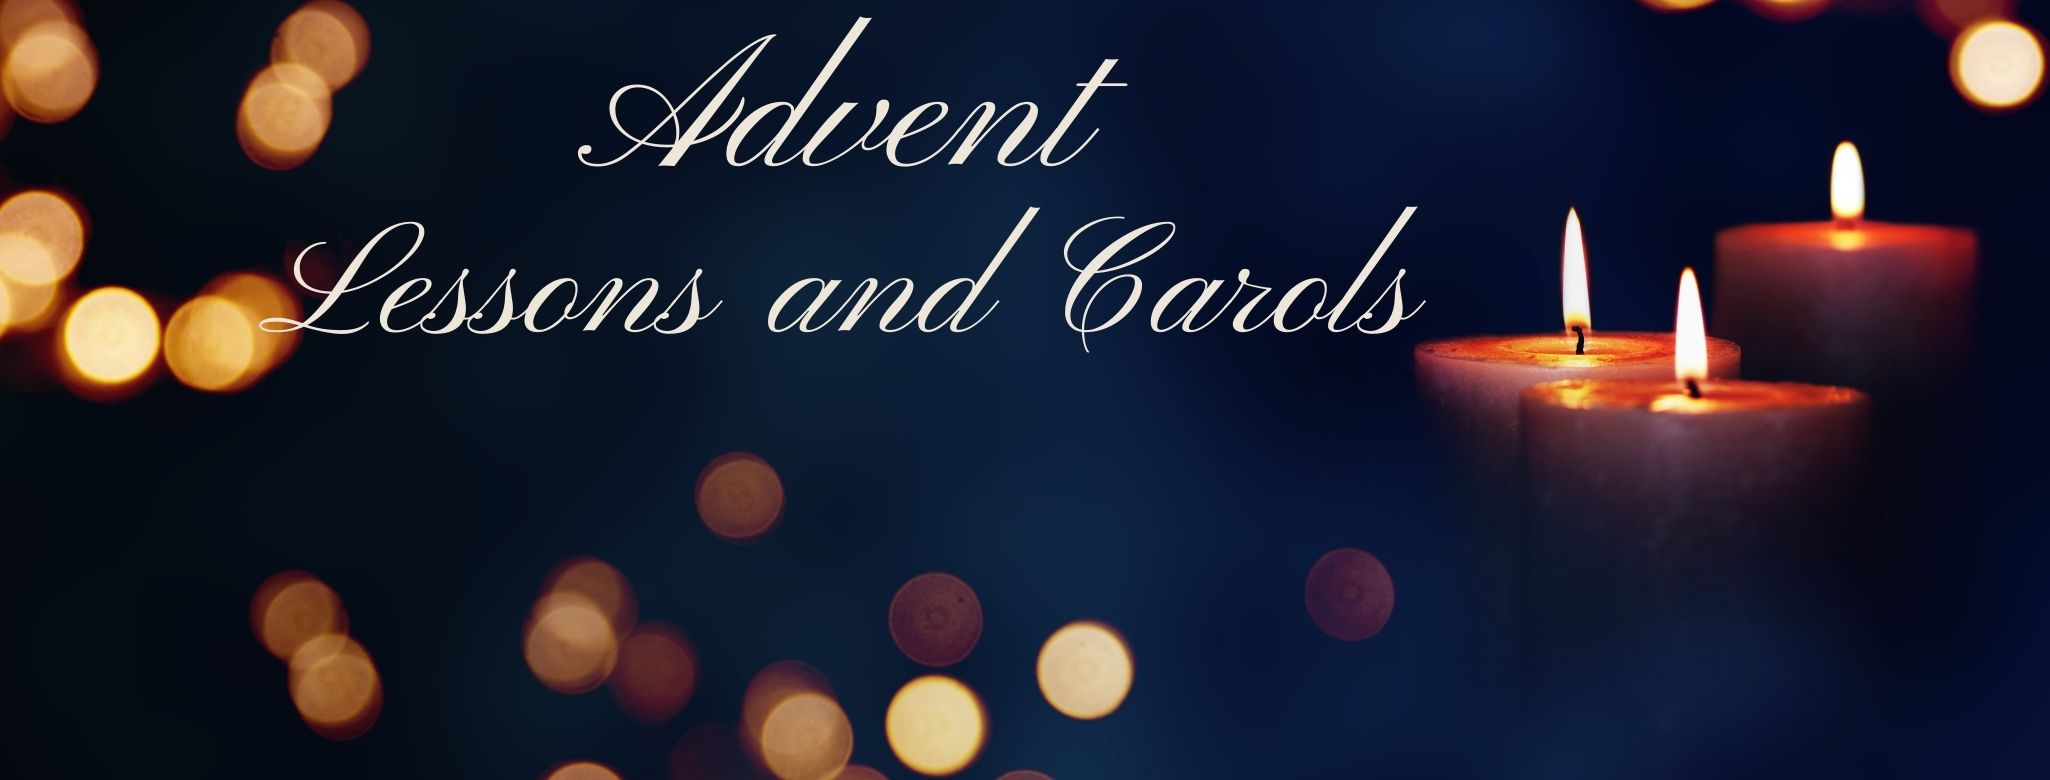 Advent Lessons and Carols image